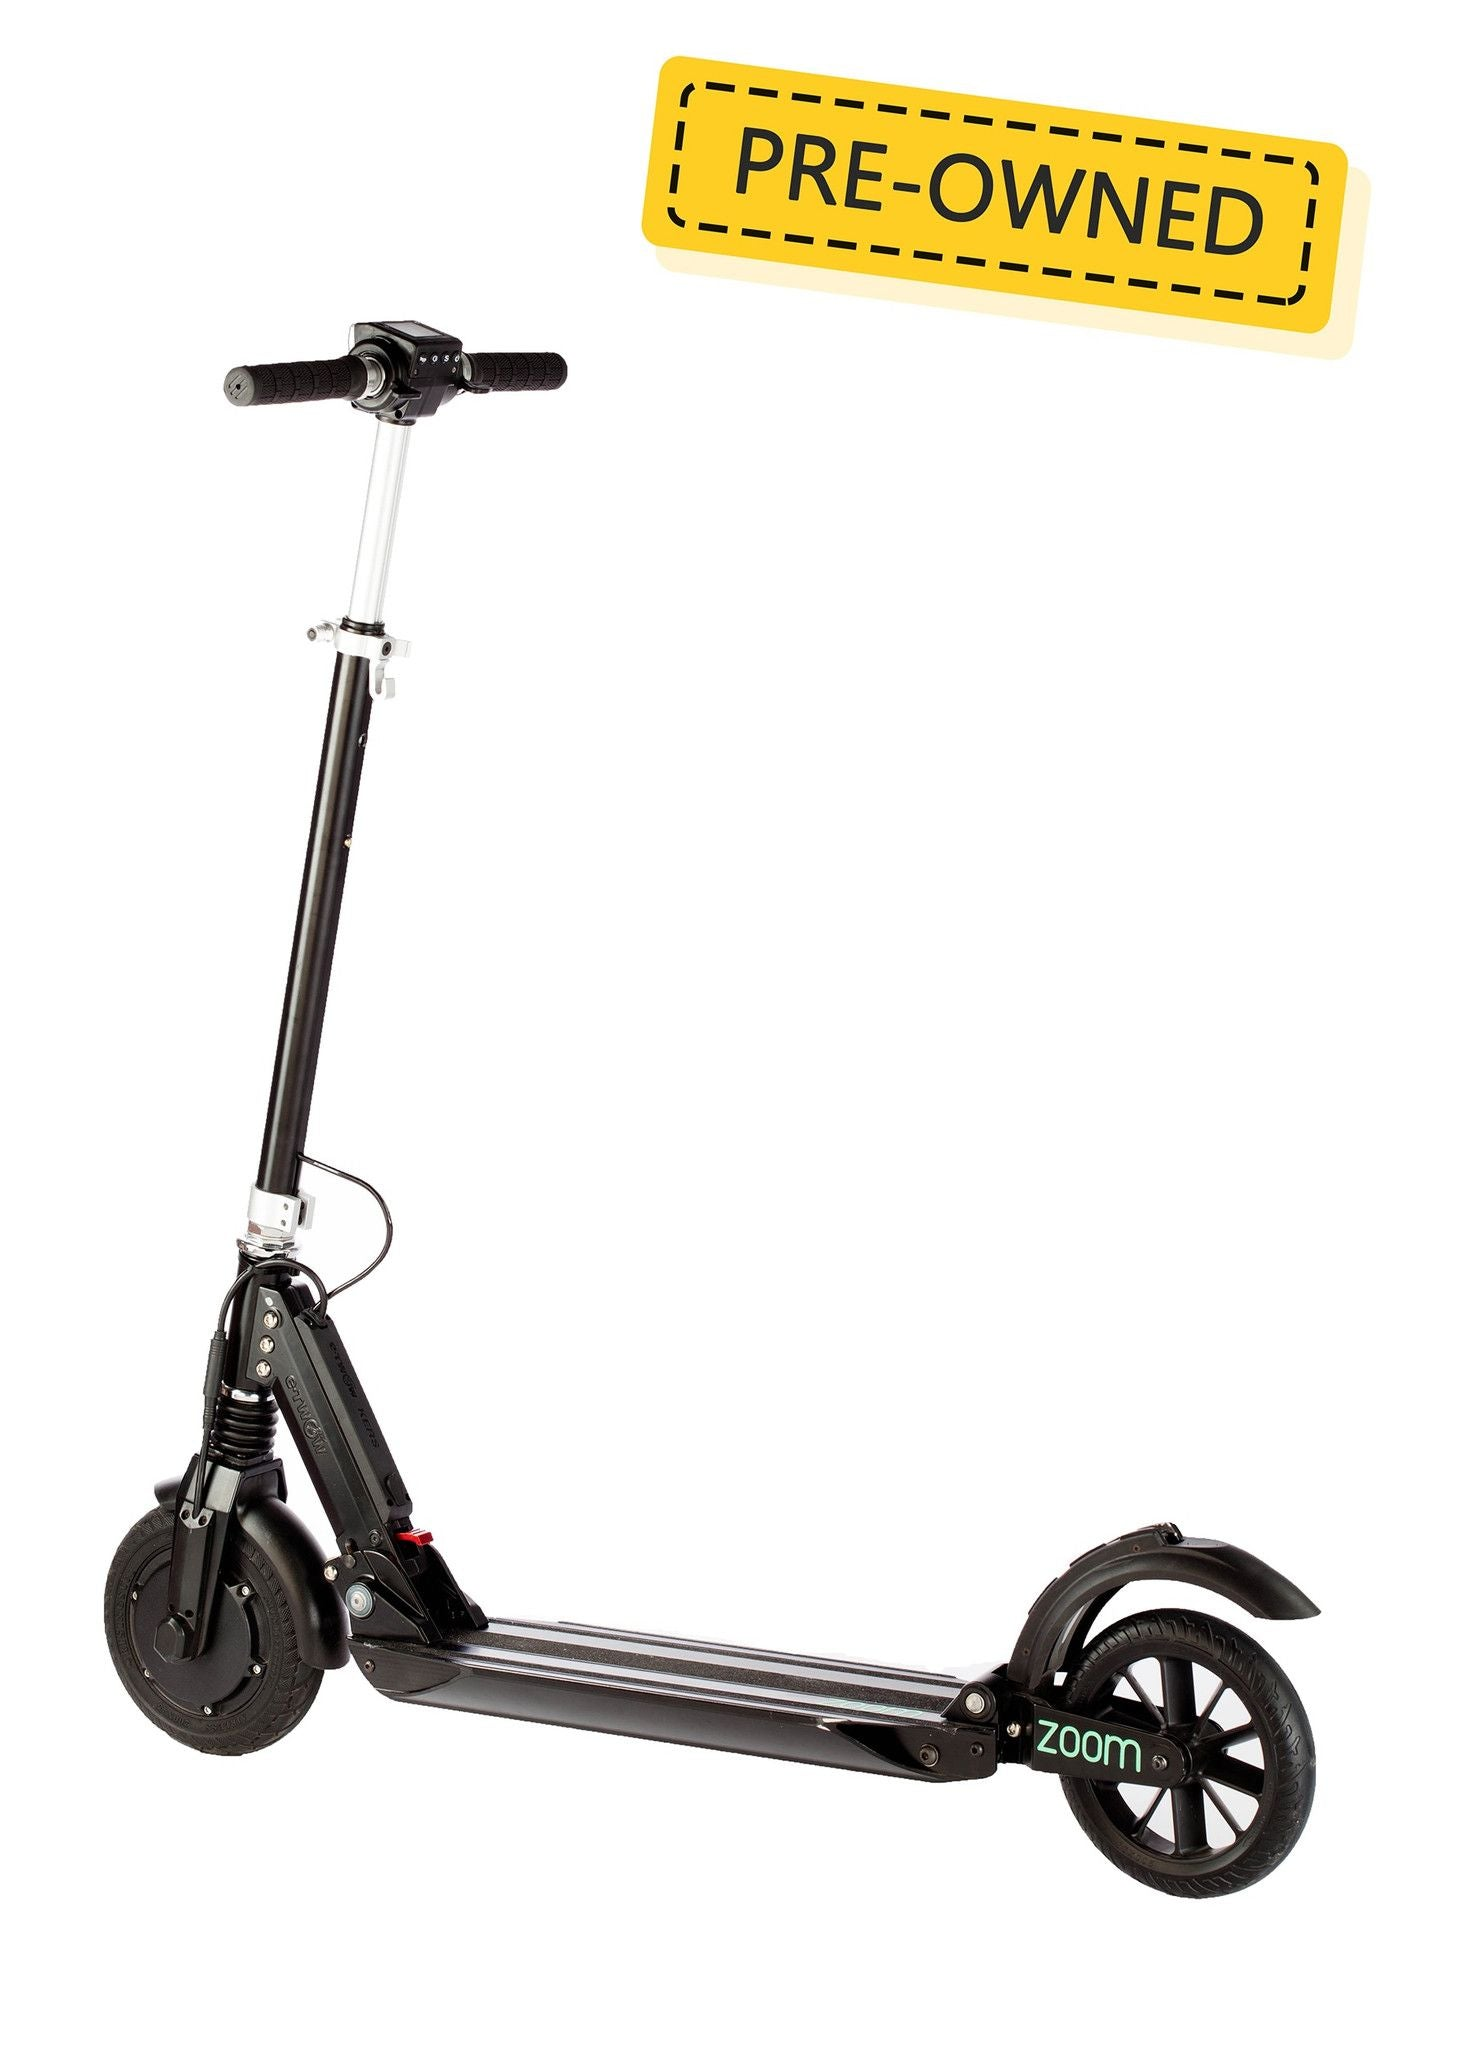 zoom air scooter for sale